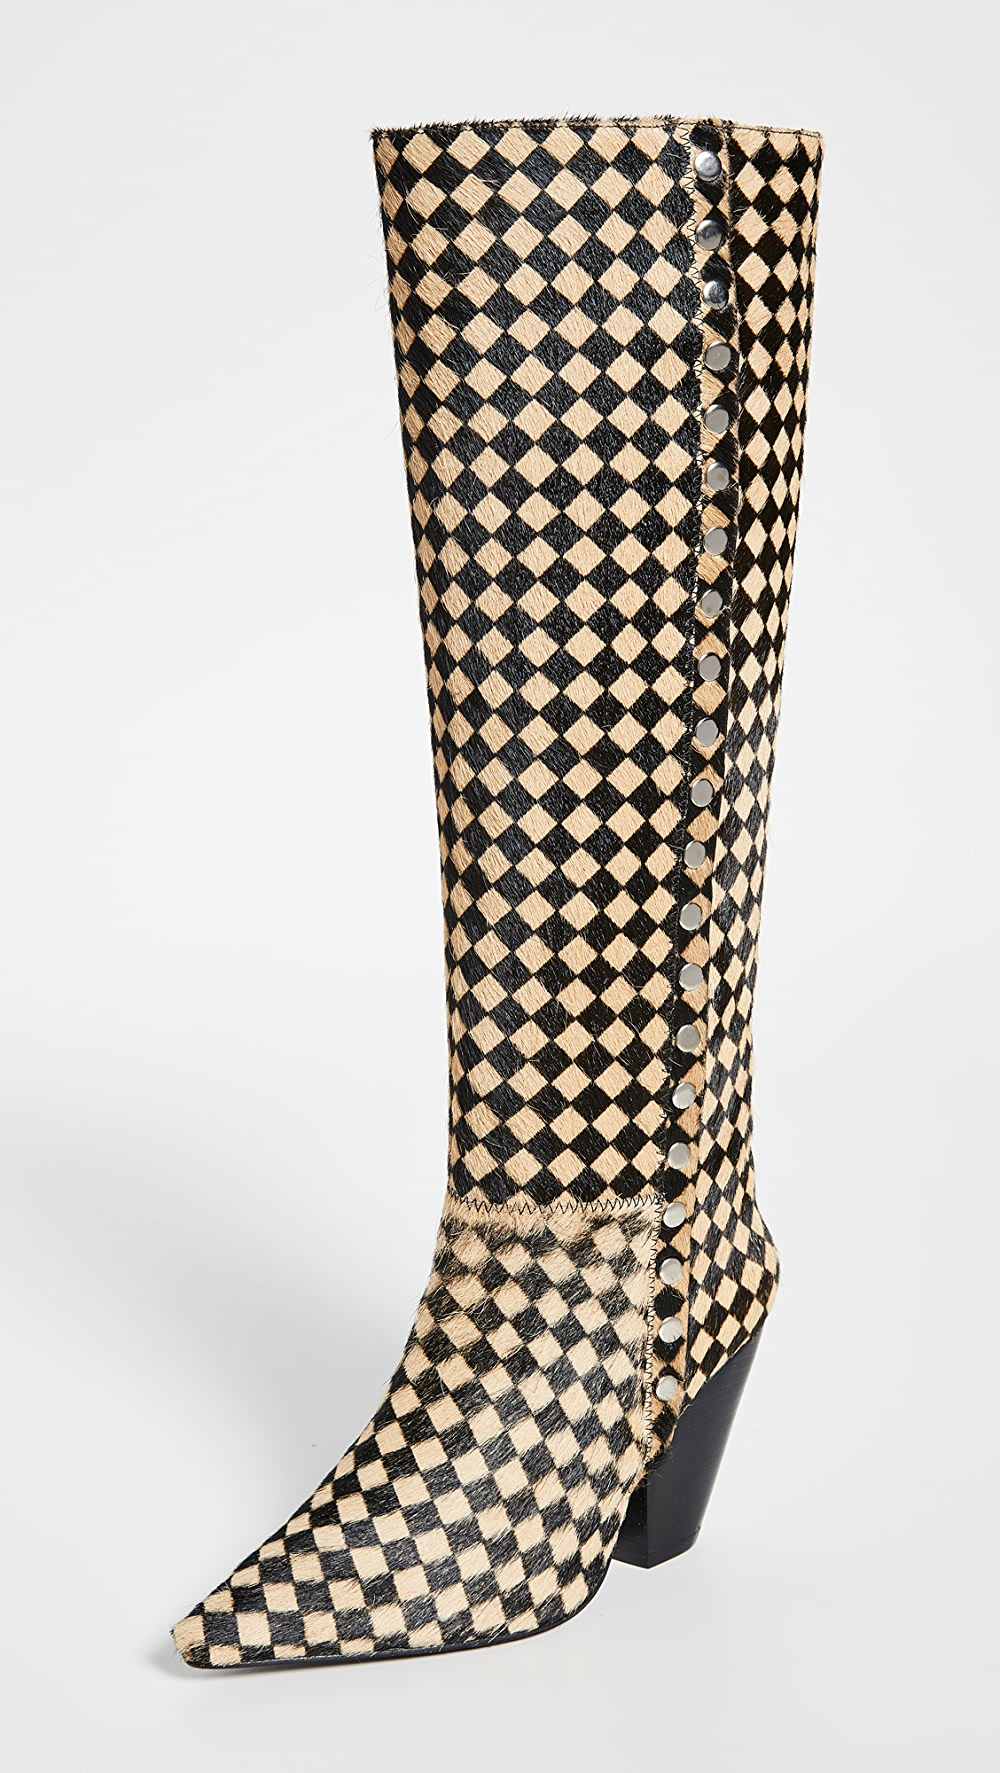 Amiable Toga Pulla - Tall Chess Boots Street Price